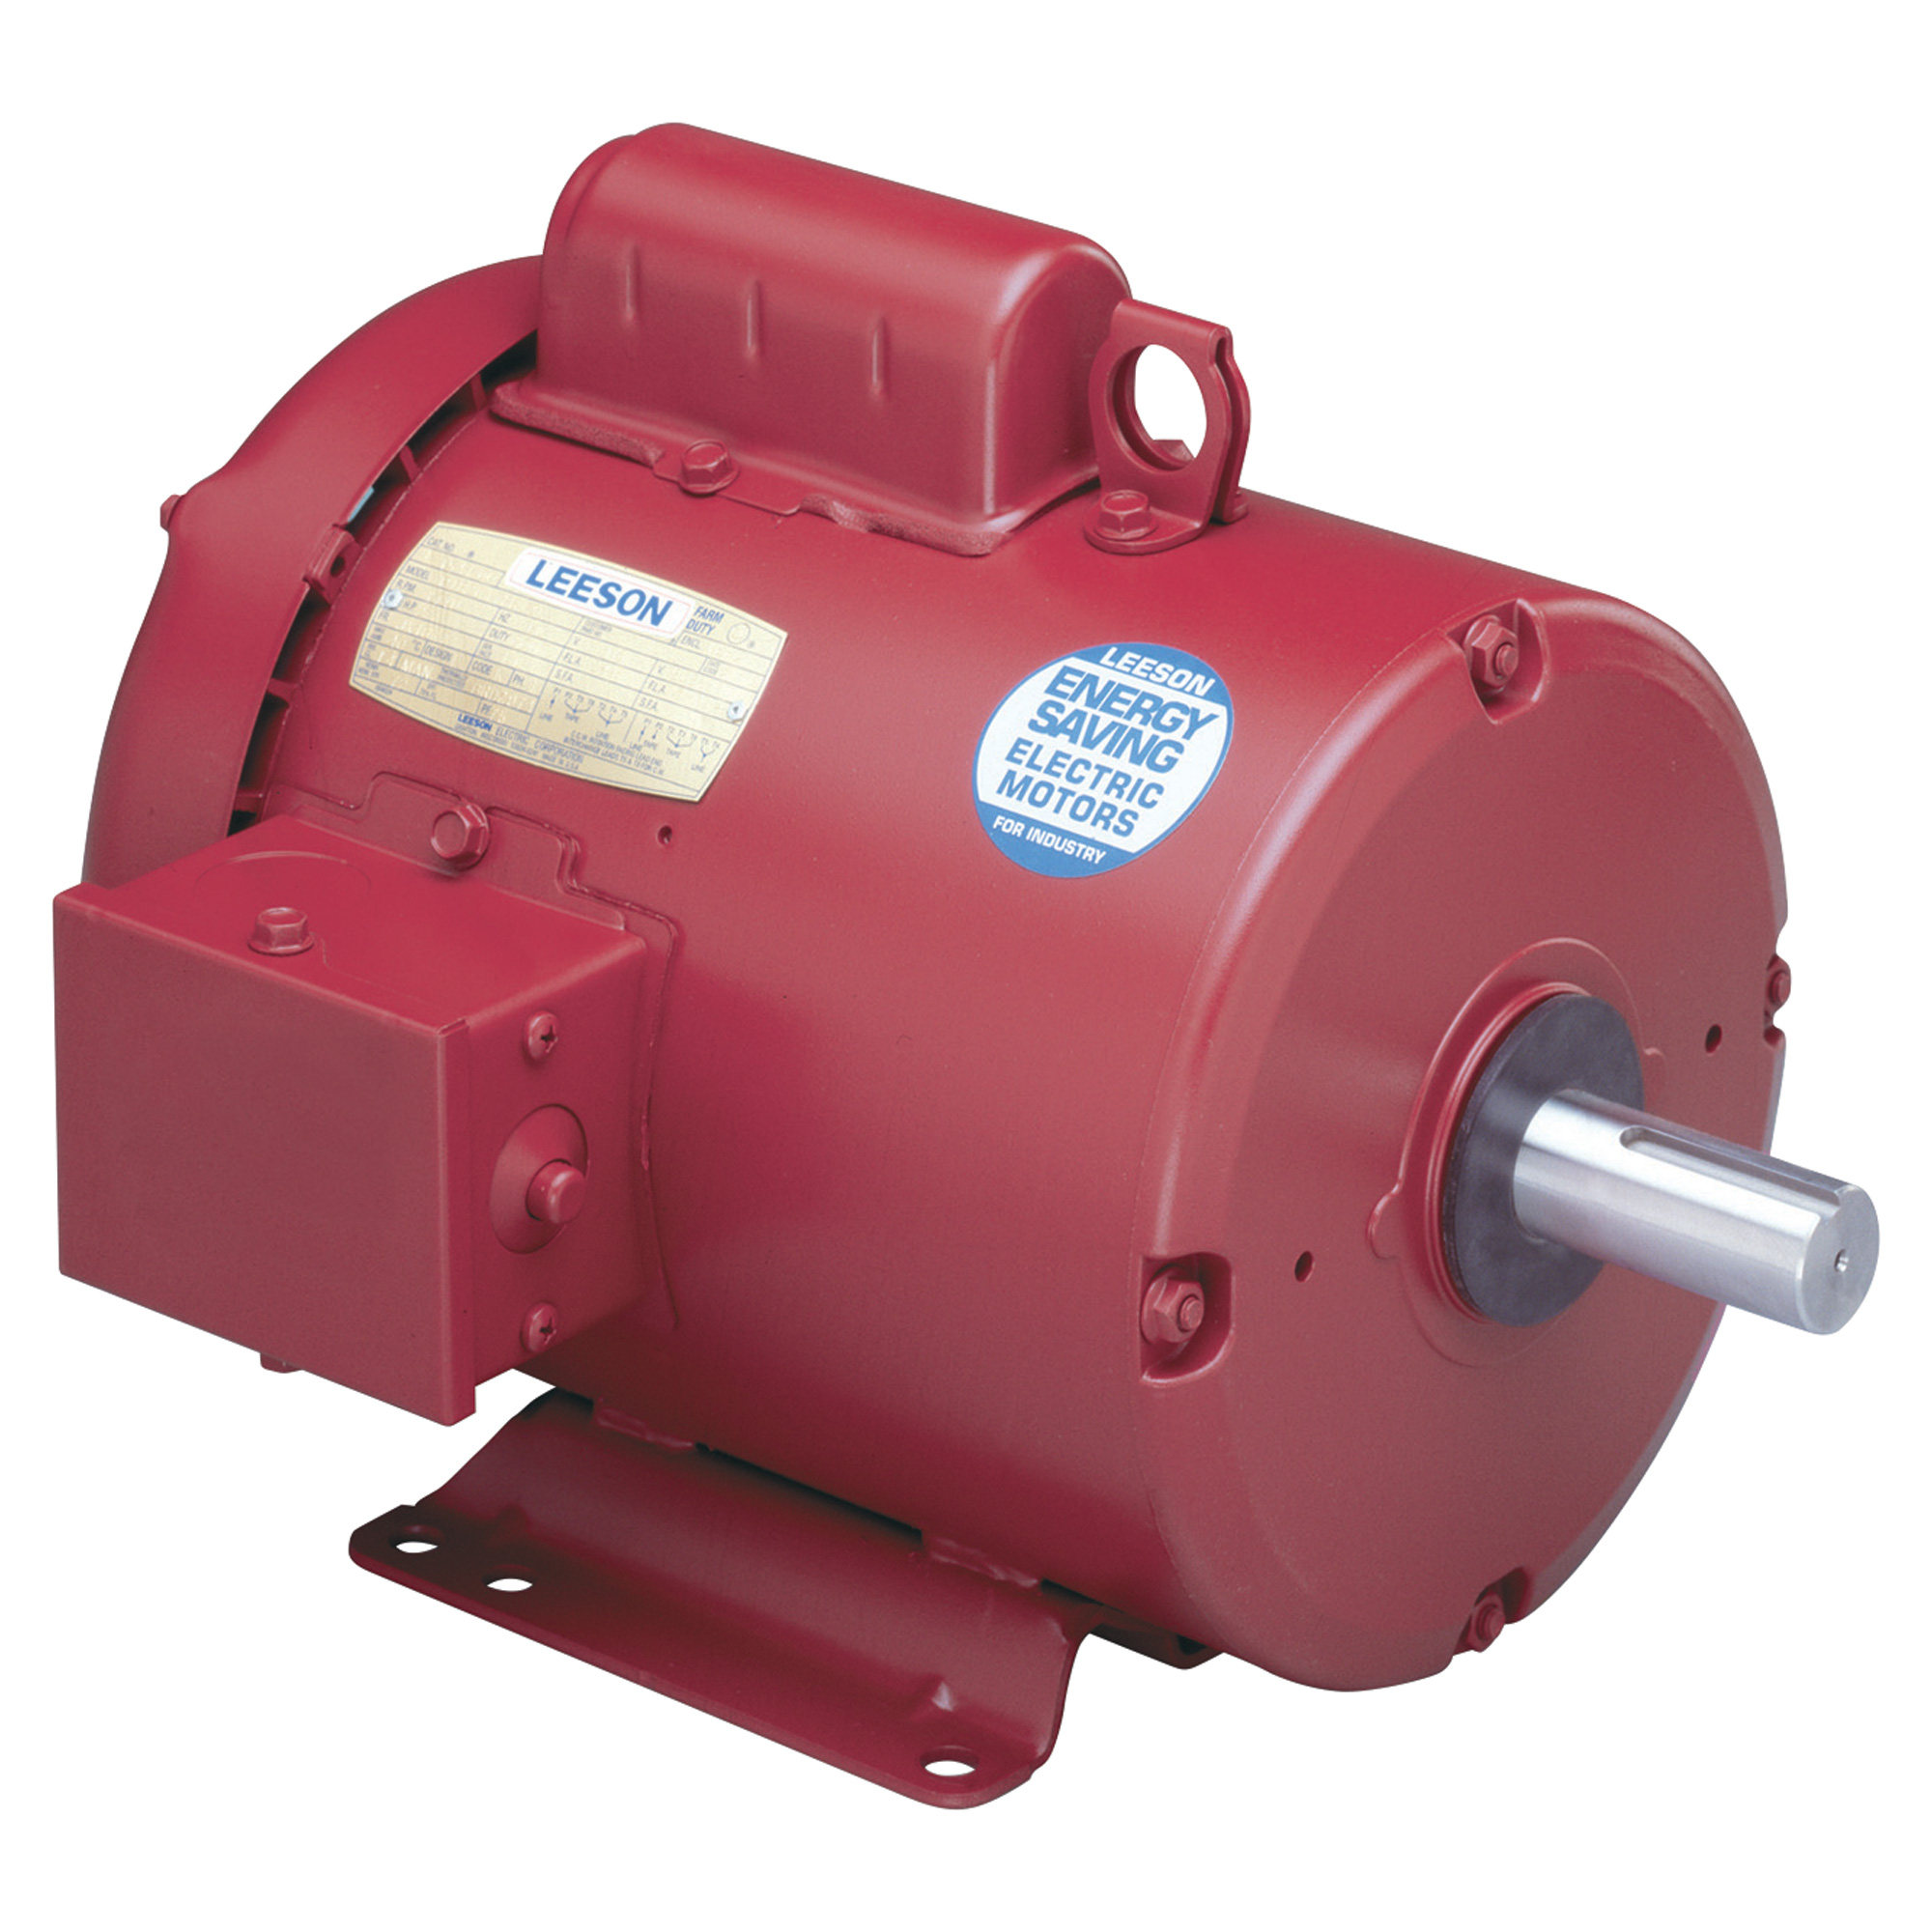 Leeson farm duty electric motor 1 2 hp 1800 rpm model for Half horsepower electric motor